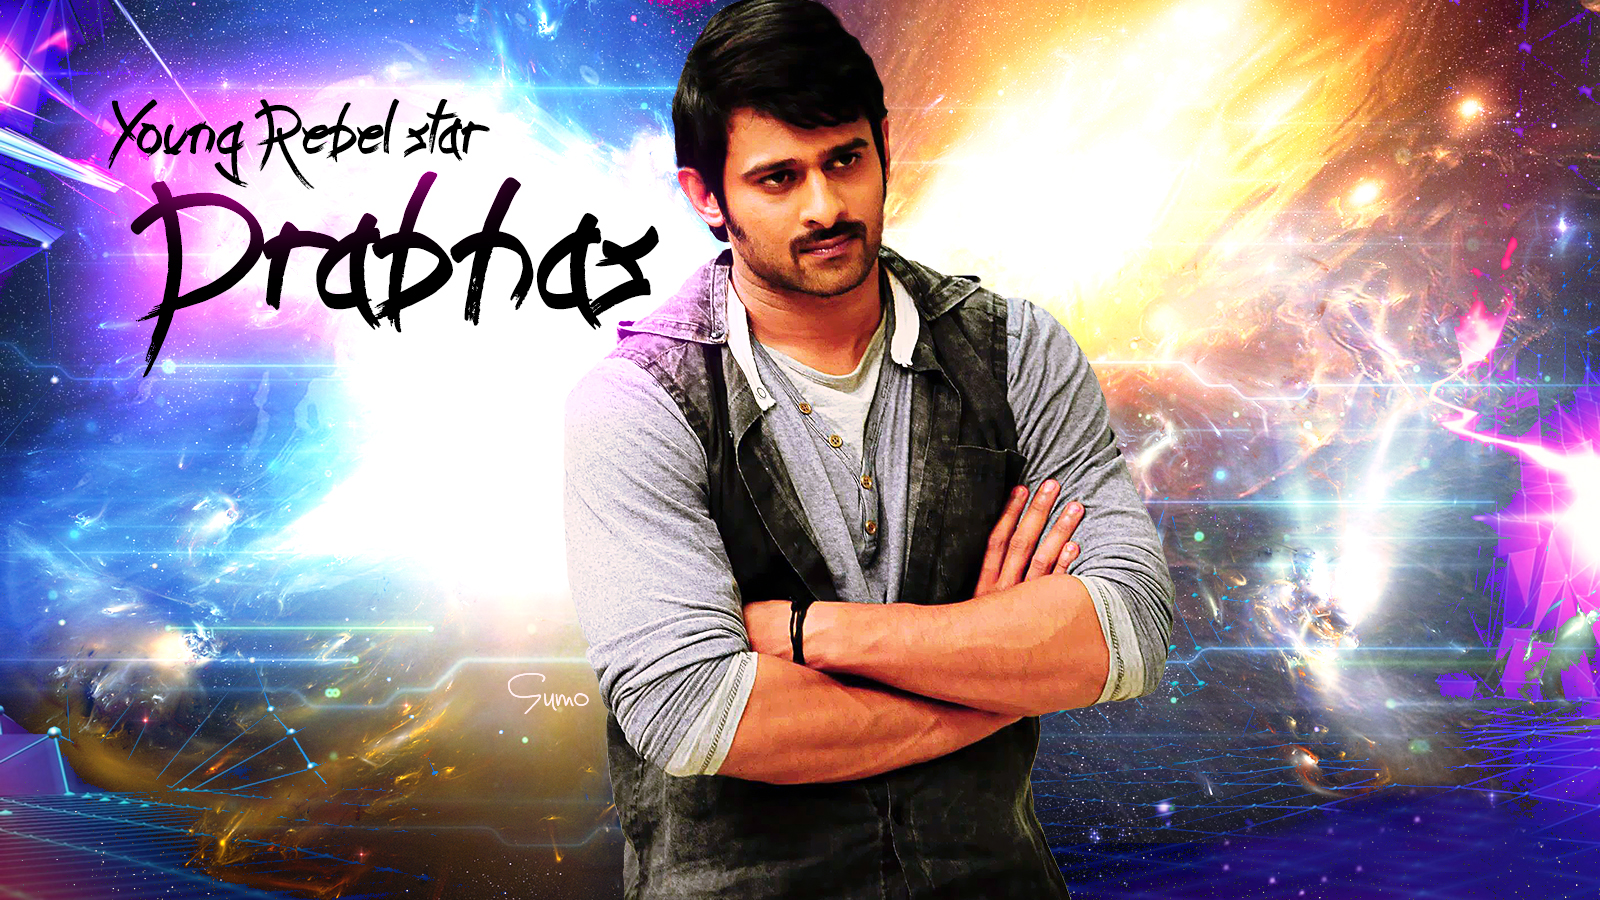 prabhas darling lovely by sumanth0019 on deviantart prabhas darling lovely by